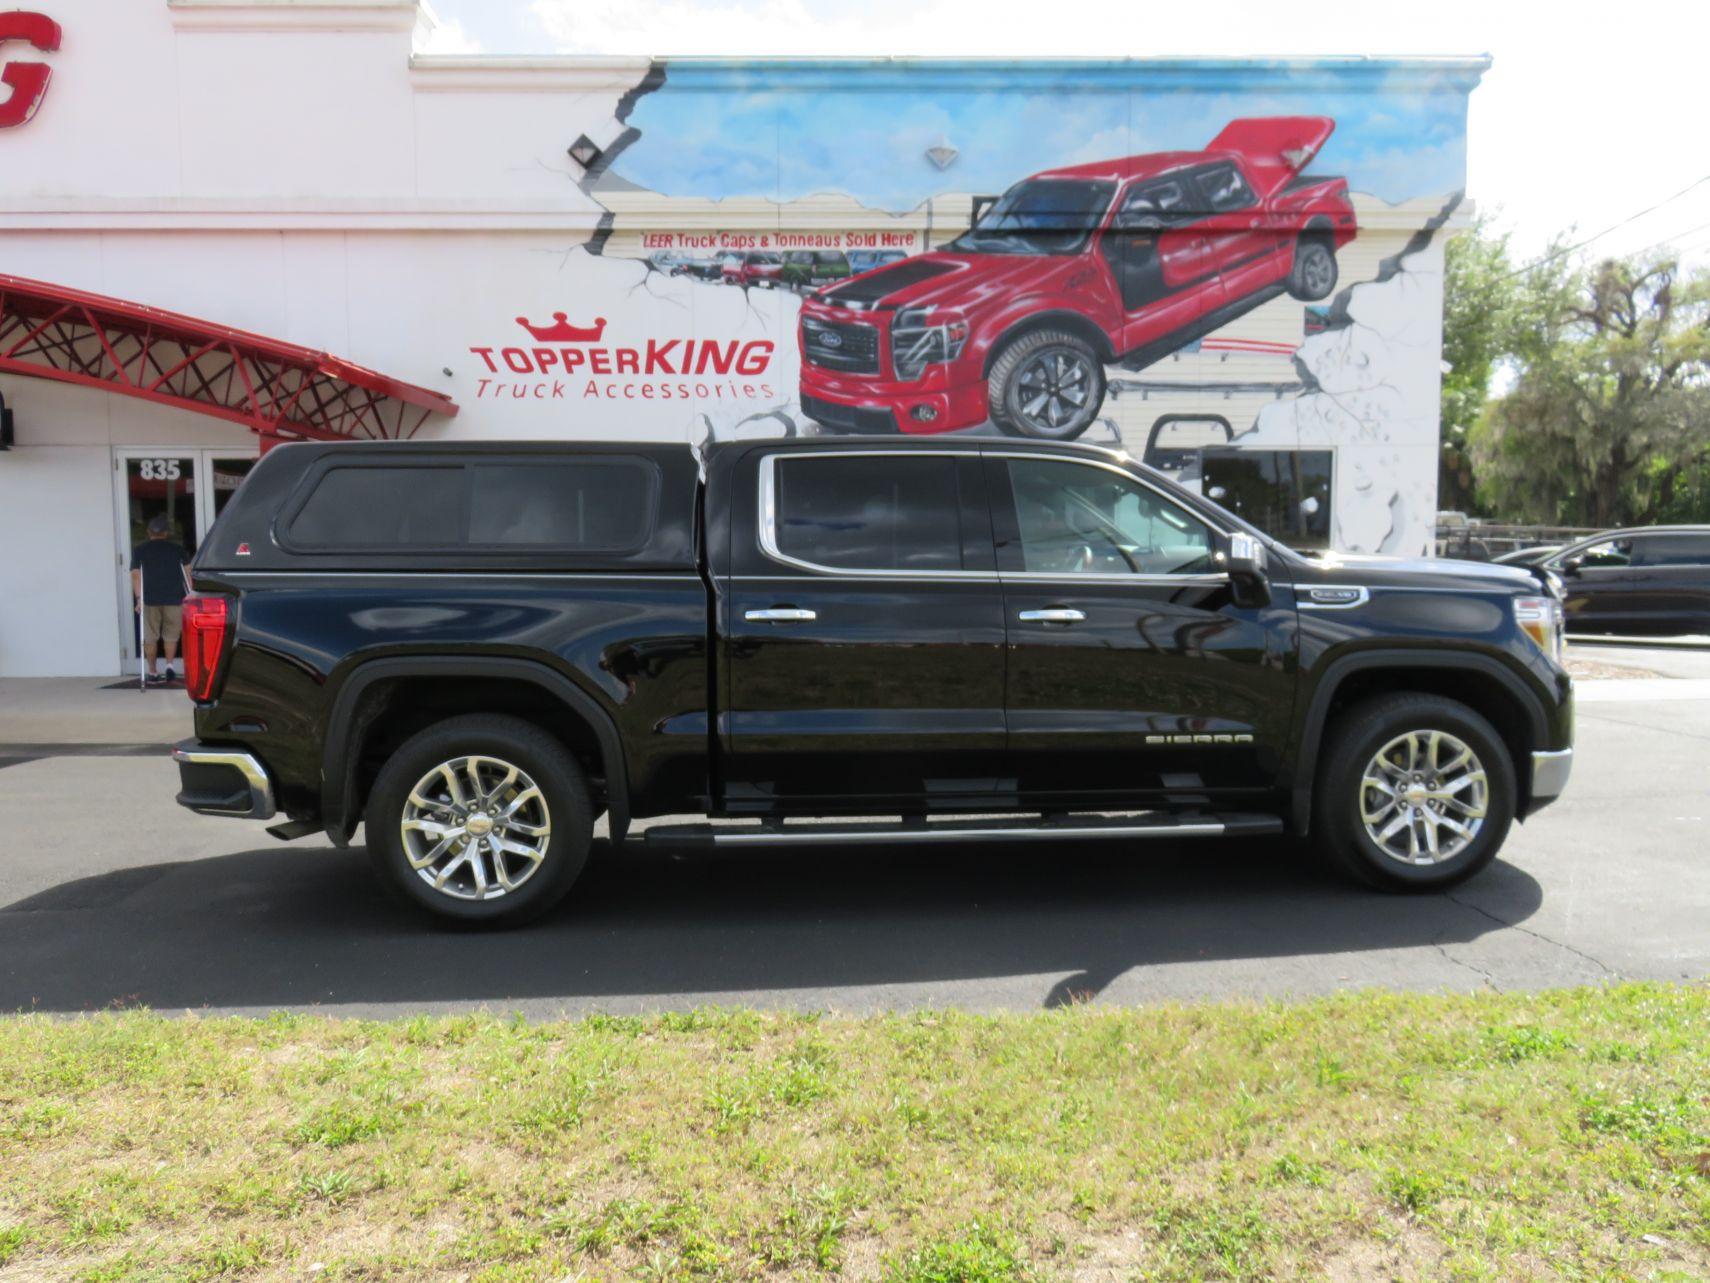 2019 Black GMC Sierra LEER 100XR, Hitch, Nerf Bars, Bug Guard, Tint by TopperKING in Brandon, FL 813-689-2449 or Clearwater, FL 727-530-9066. Call today!